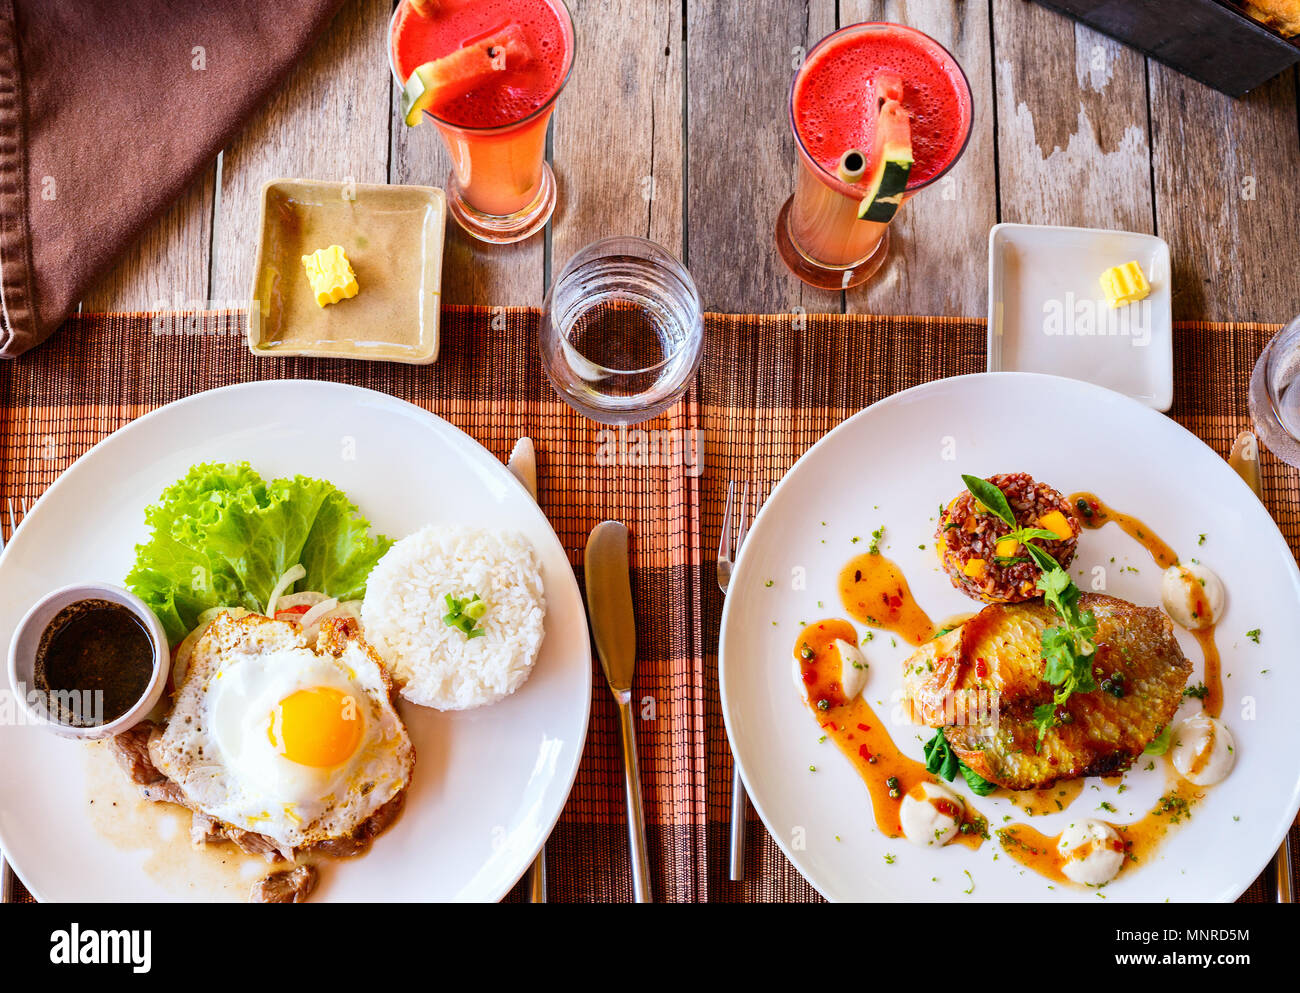 Delicious lunch for two in restaurant of fish,  rice,  fried egg and green vegetables - Stock Image